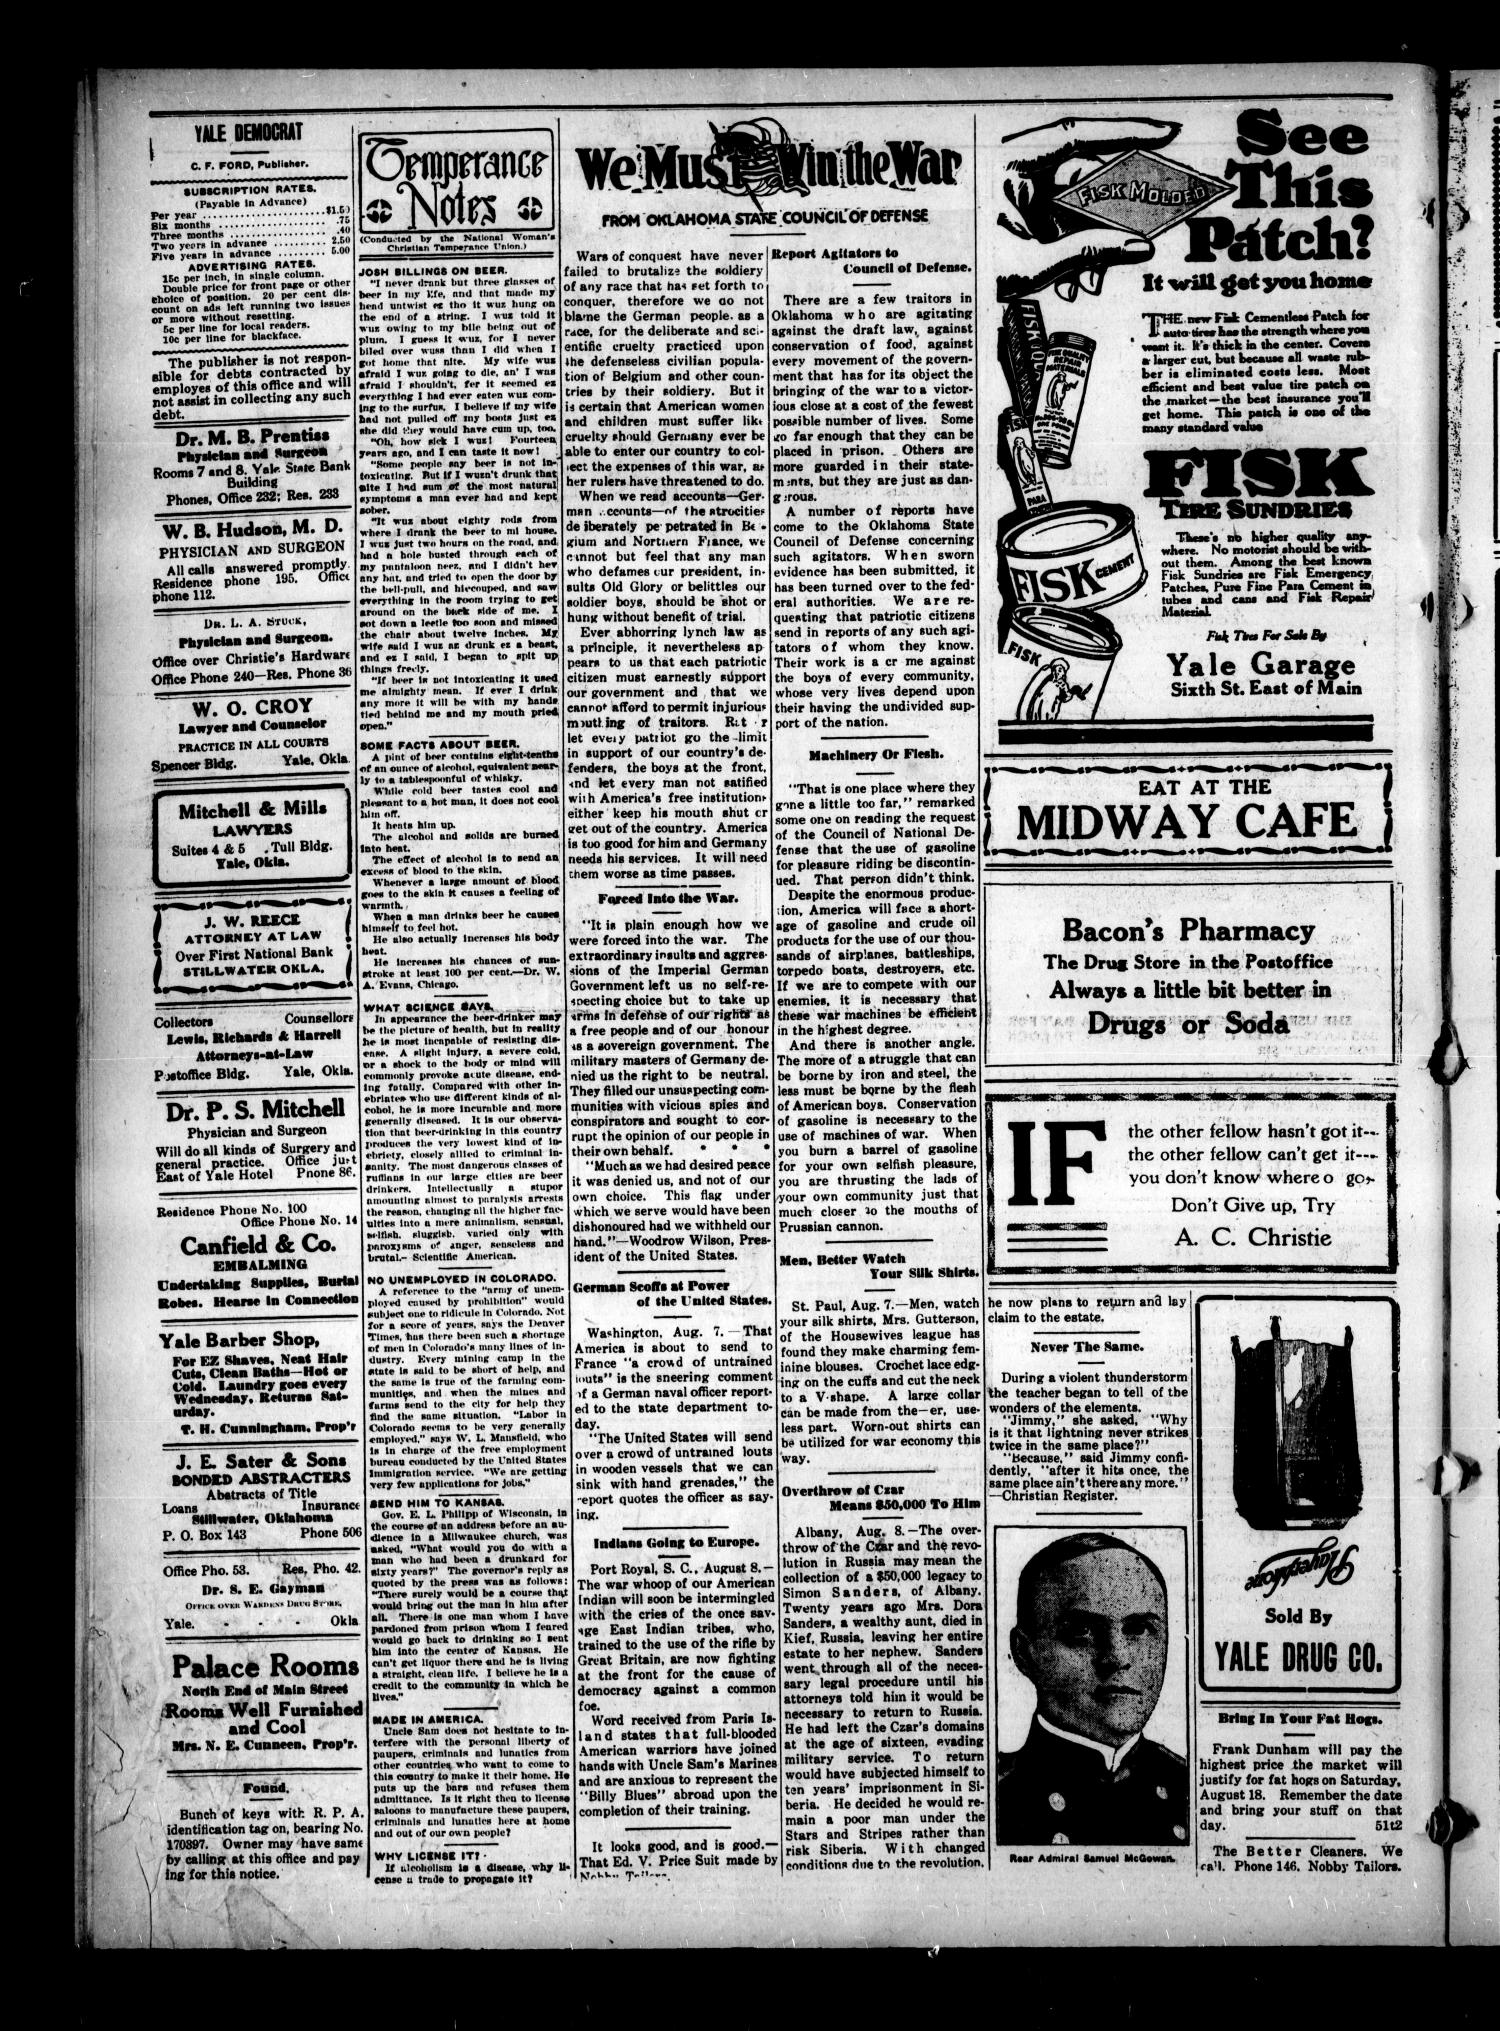 Yale Democrat (Yale, Okla.), Vol. 9, No. 51, Ed. 1 Thursday, August 9, 1917                                                                                                      [Sequence #]: 4 of 8